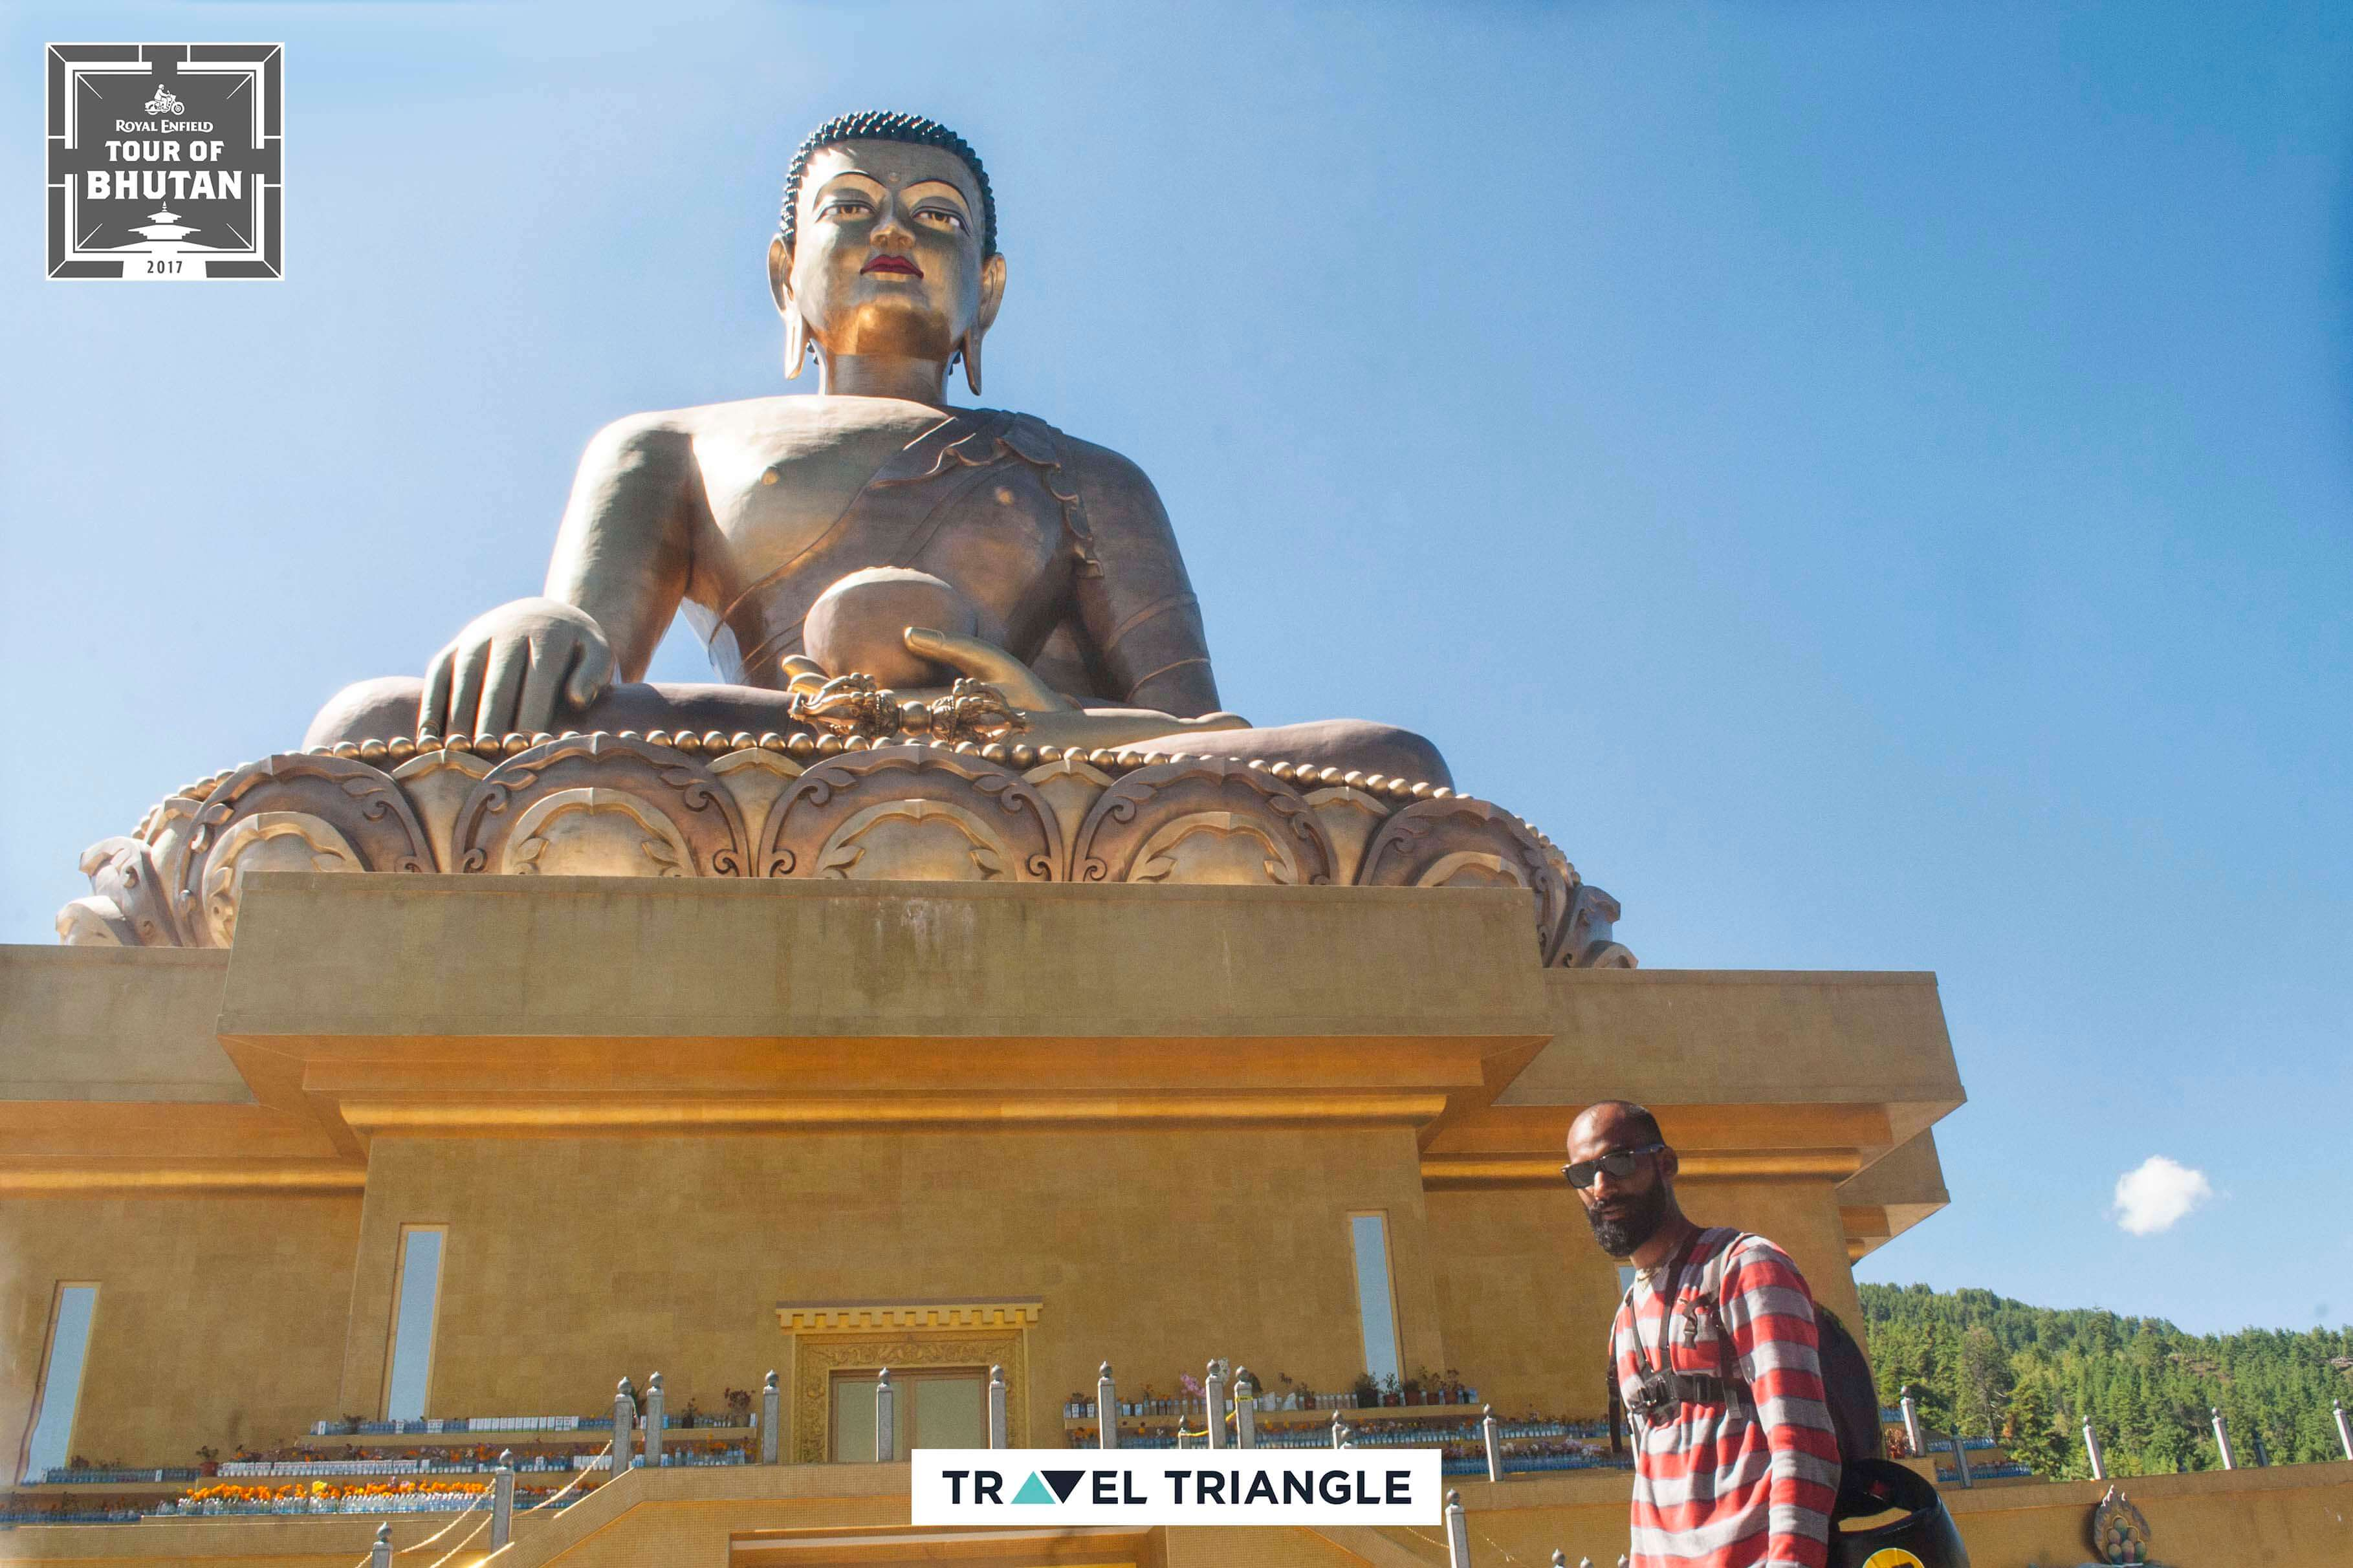 Thimphu: Exploring Buddhist temples on the royal enfield bike trip